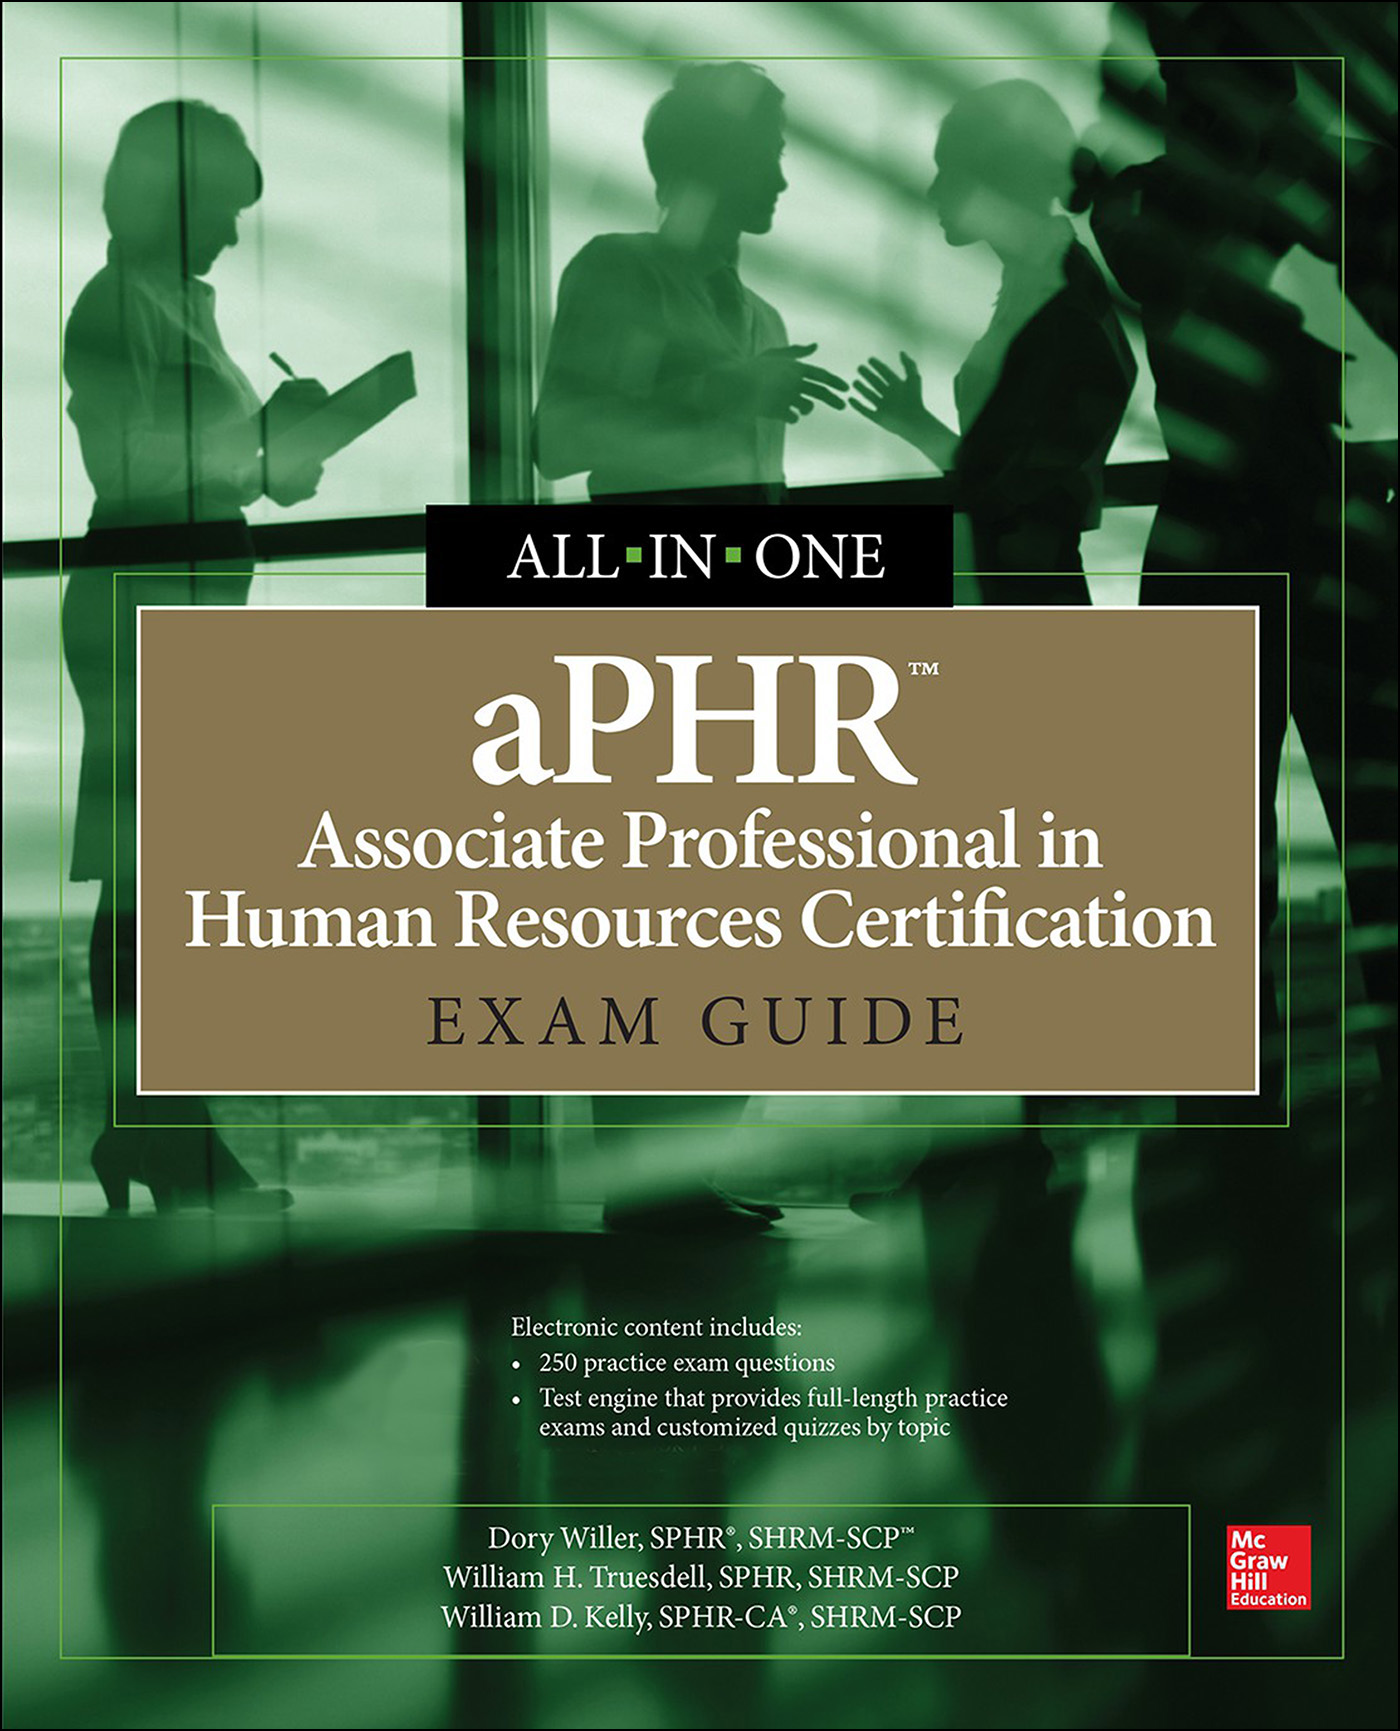 Cover aphr associate professional in human resources with safari you learn the way you learn best get unlimited access to videos live online training learning paths books interactive tutorials and more xflitez Choice Image